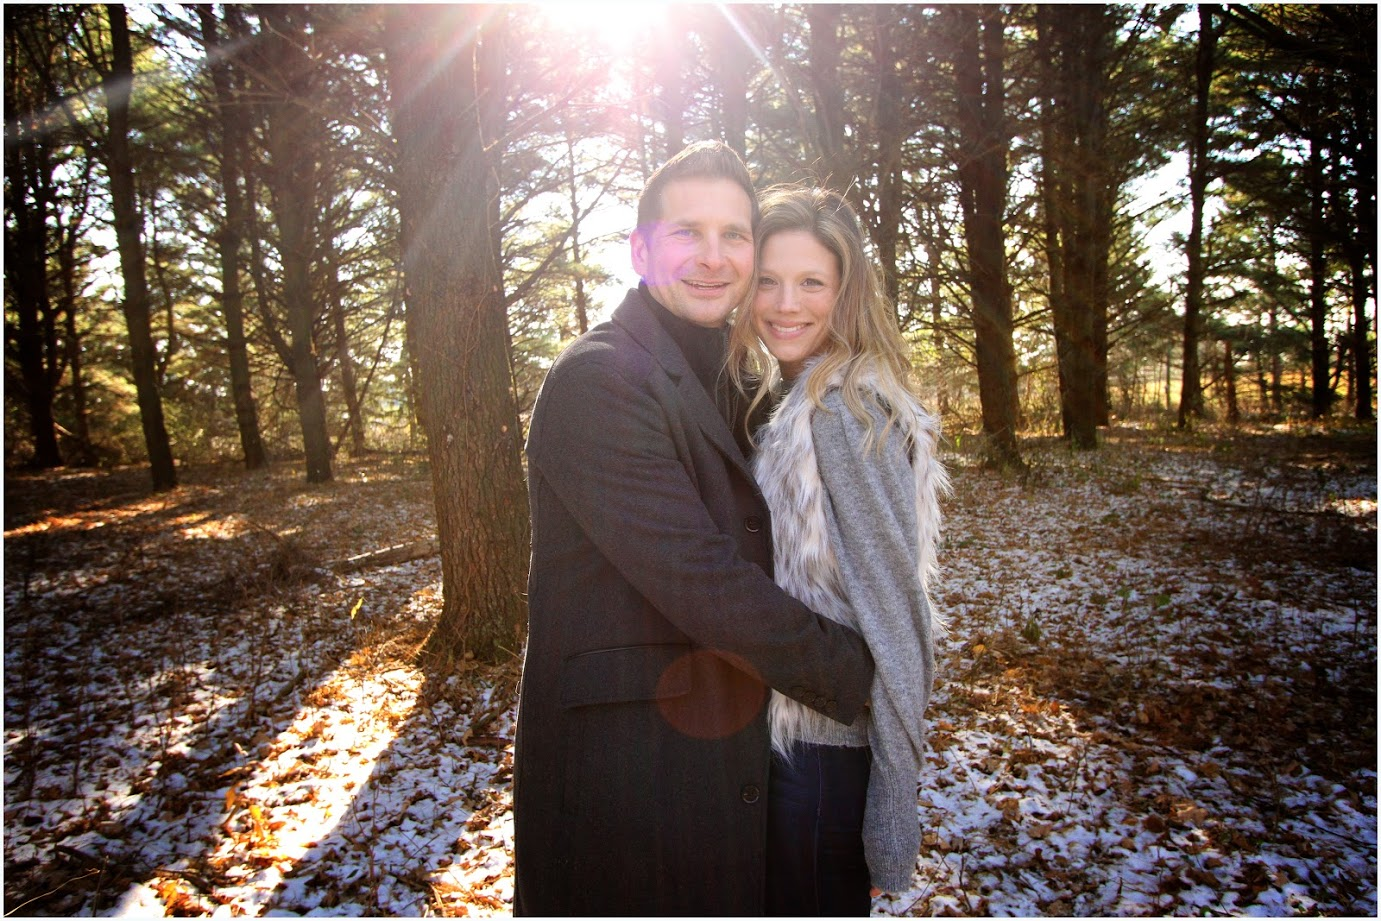 husband and wife picture in woods